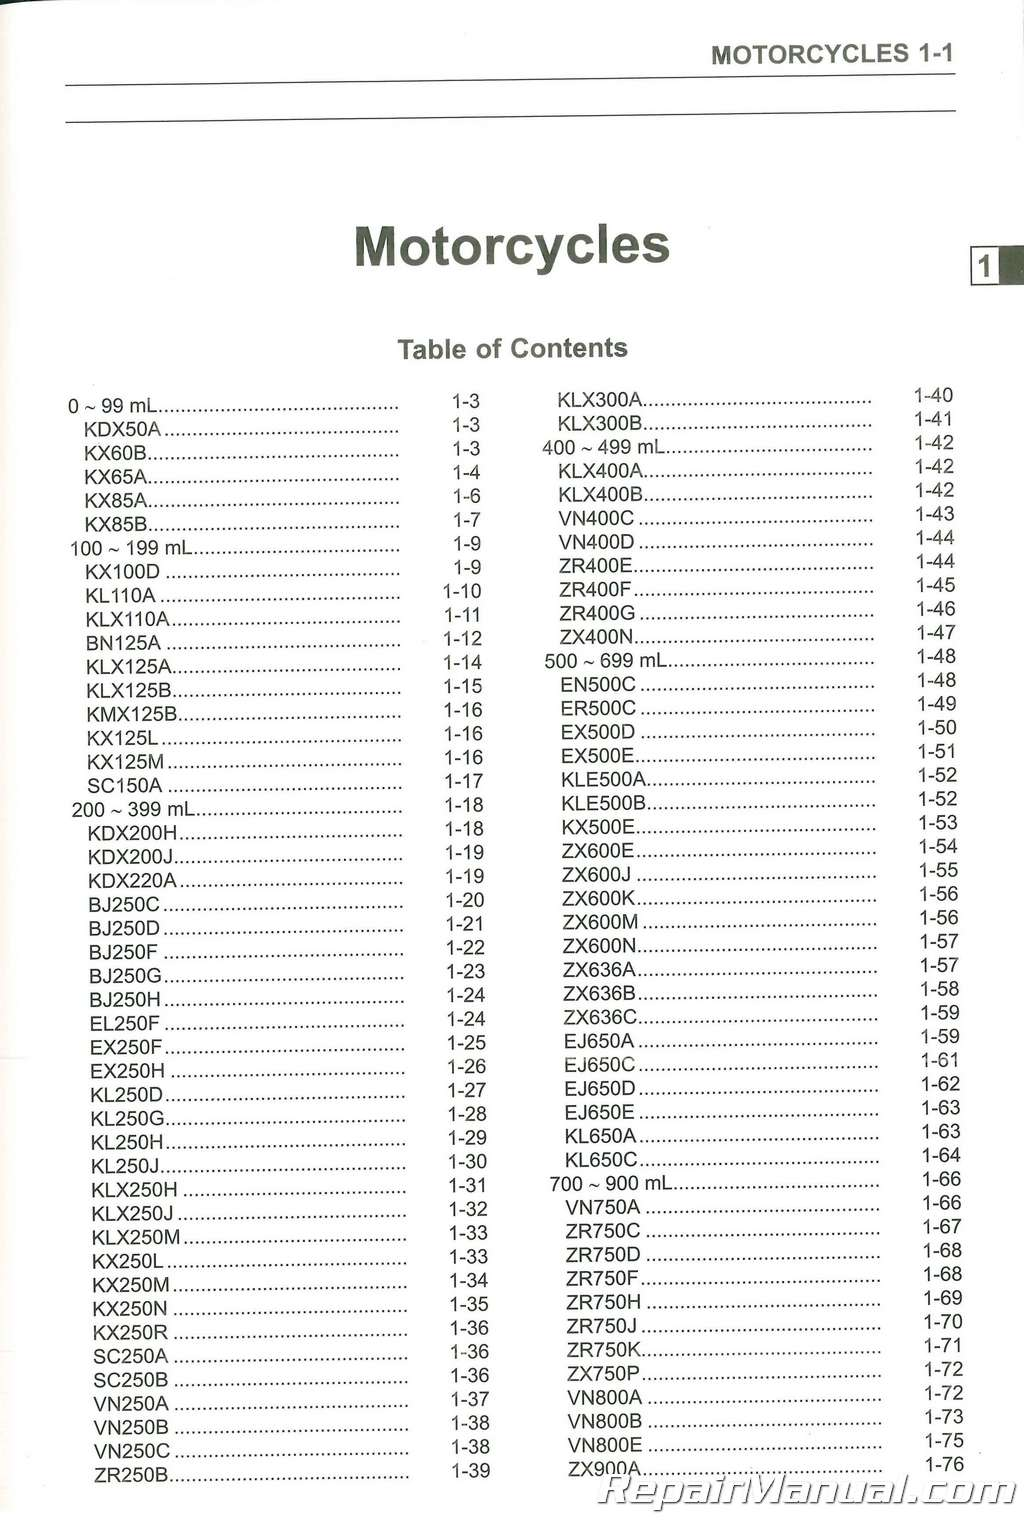 2002-2005 Kawasaki Model Recognition Manual : 99930-1008